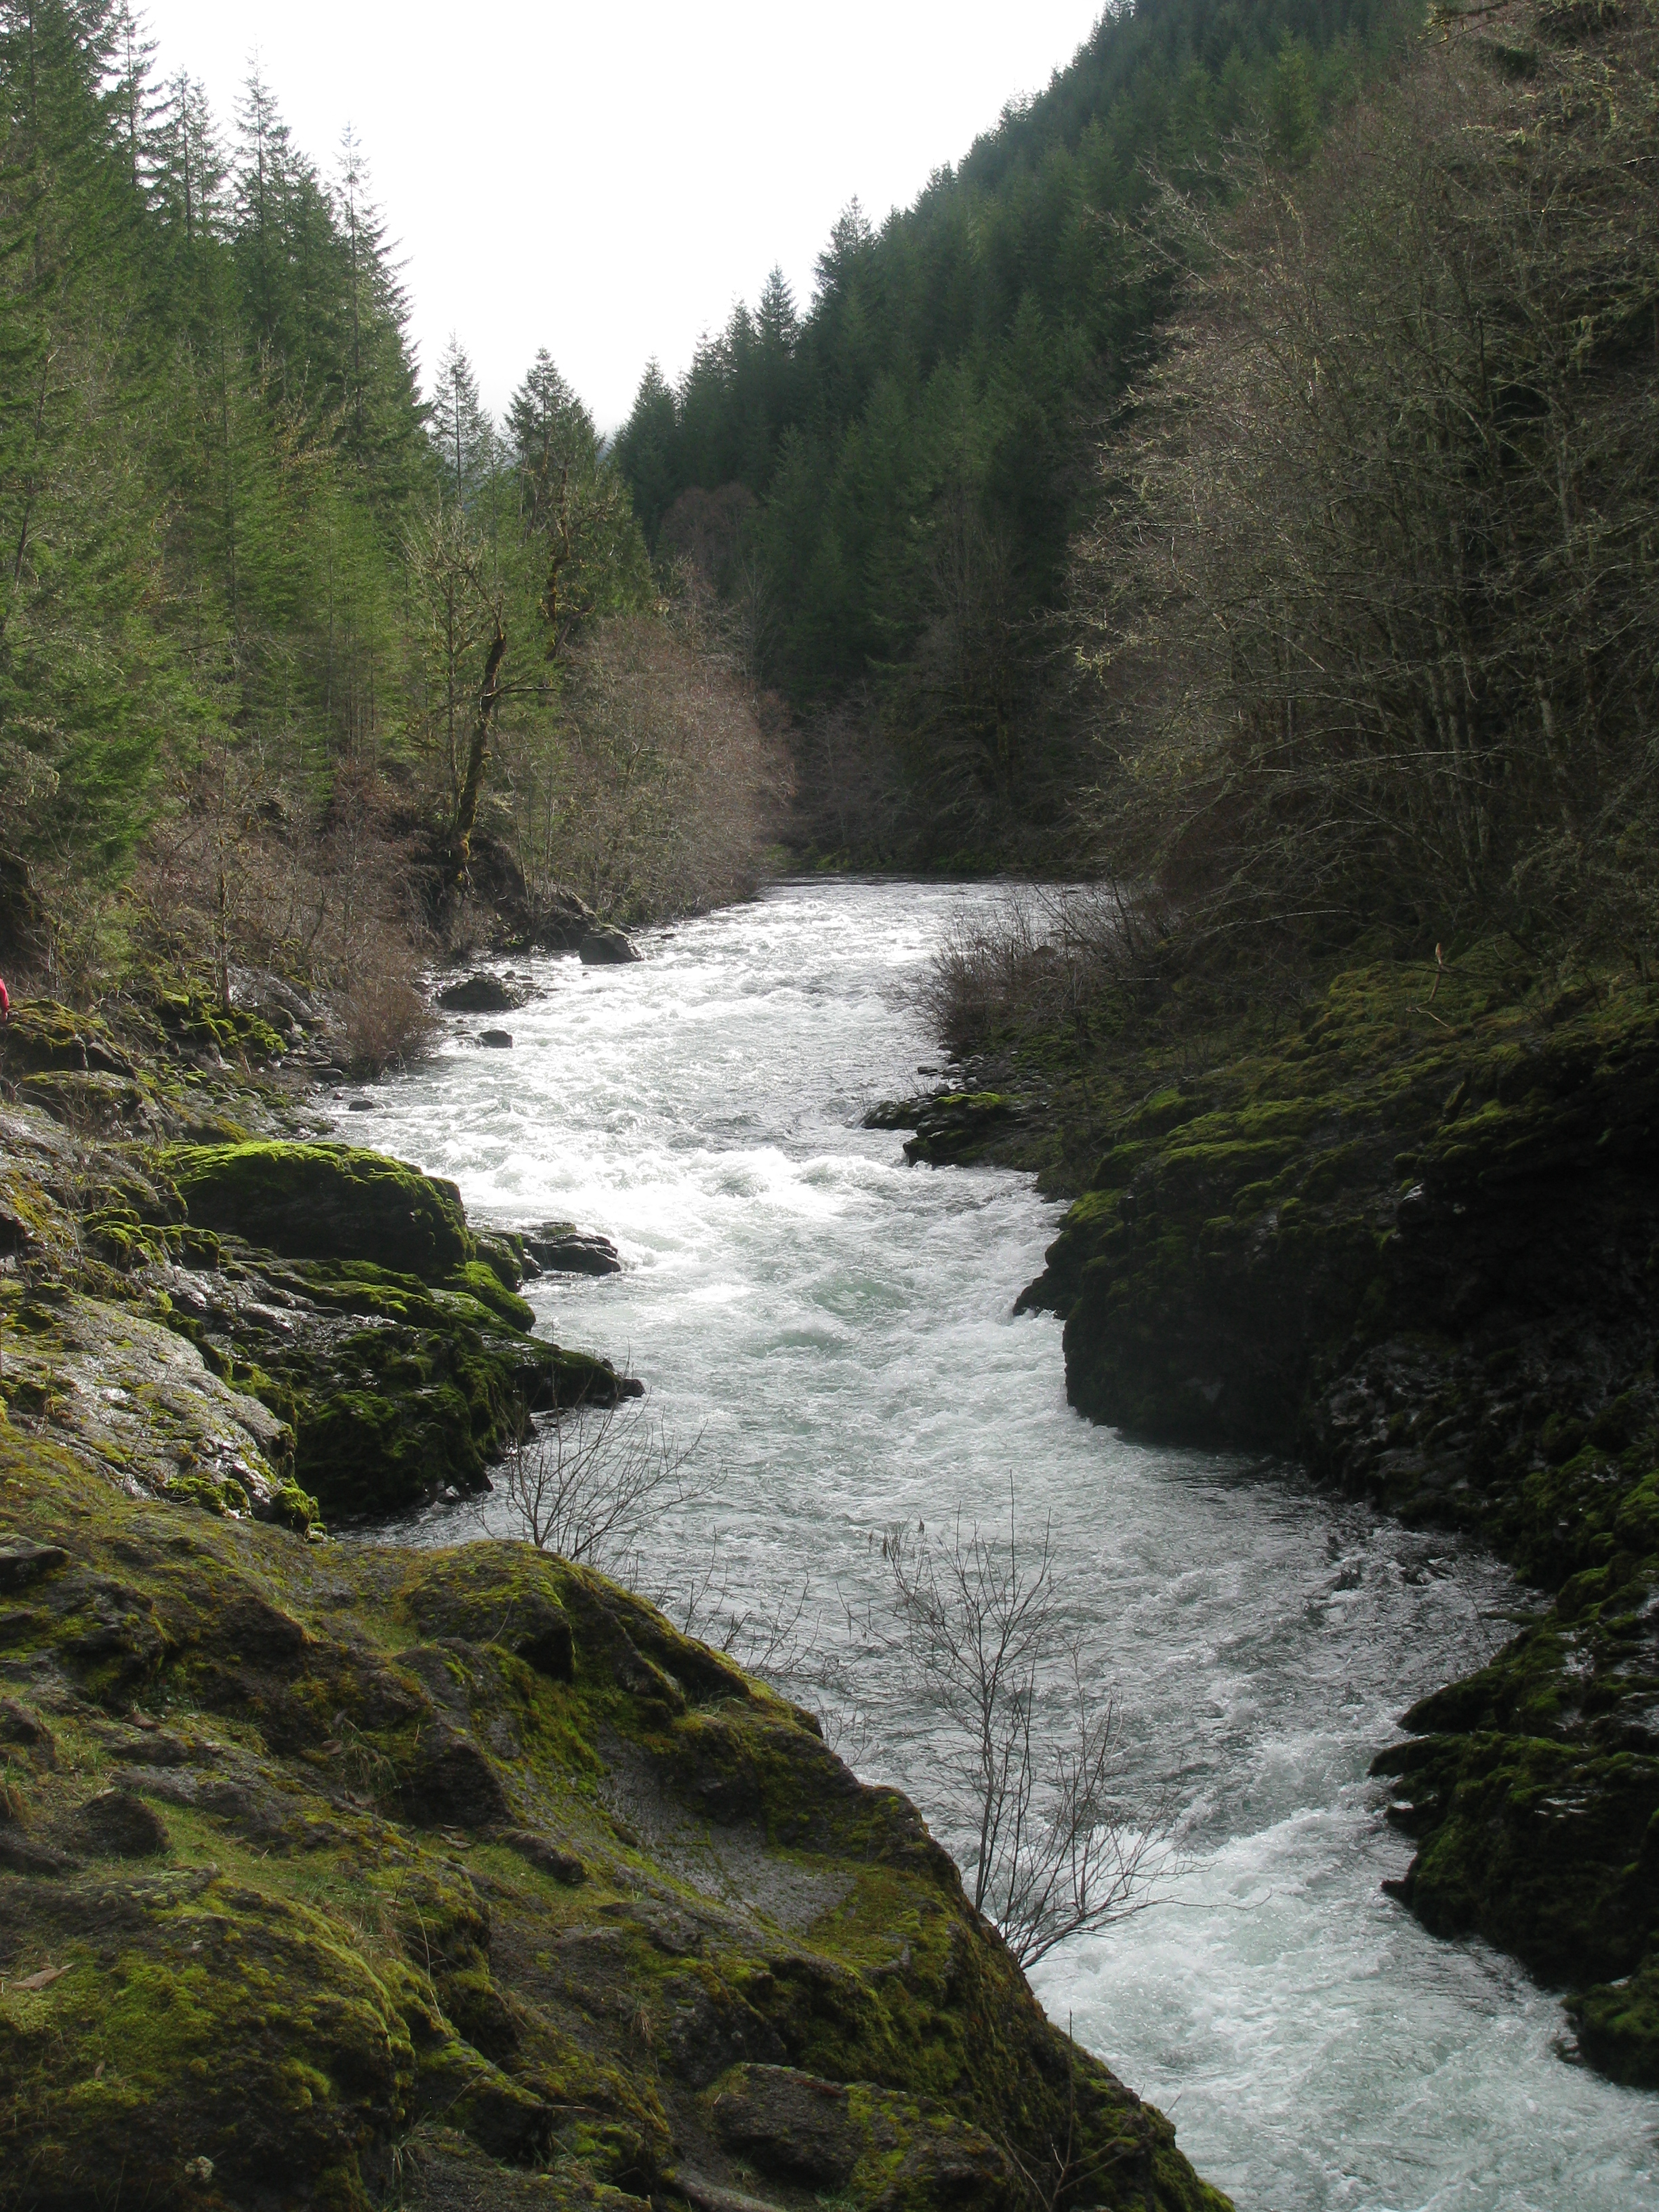 The Molalla River in Clackamas County Oregon would receive protection as a Wild and Scenic River in a new Molalla National Recreation Area.  Source: Wikipedia.